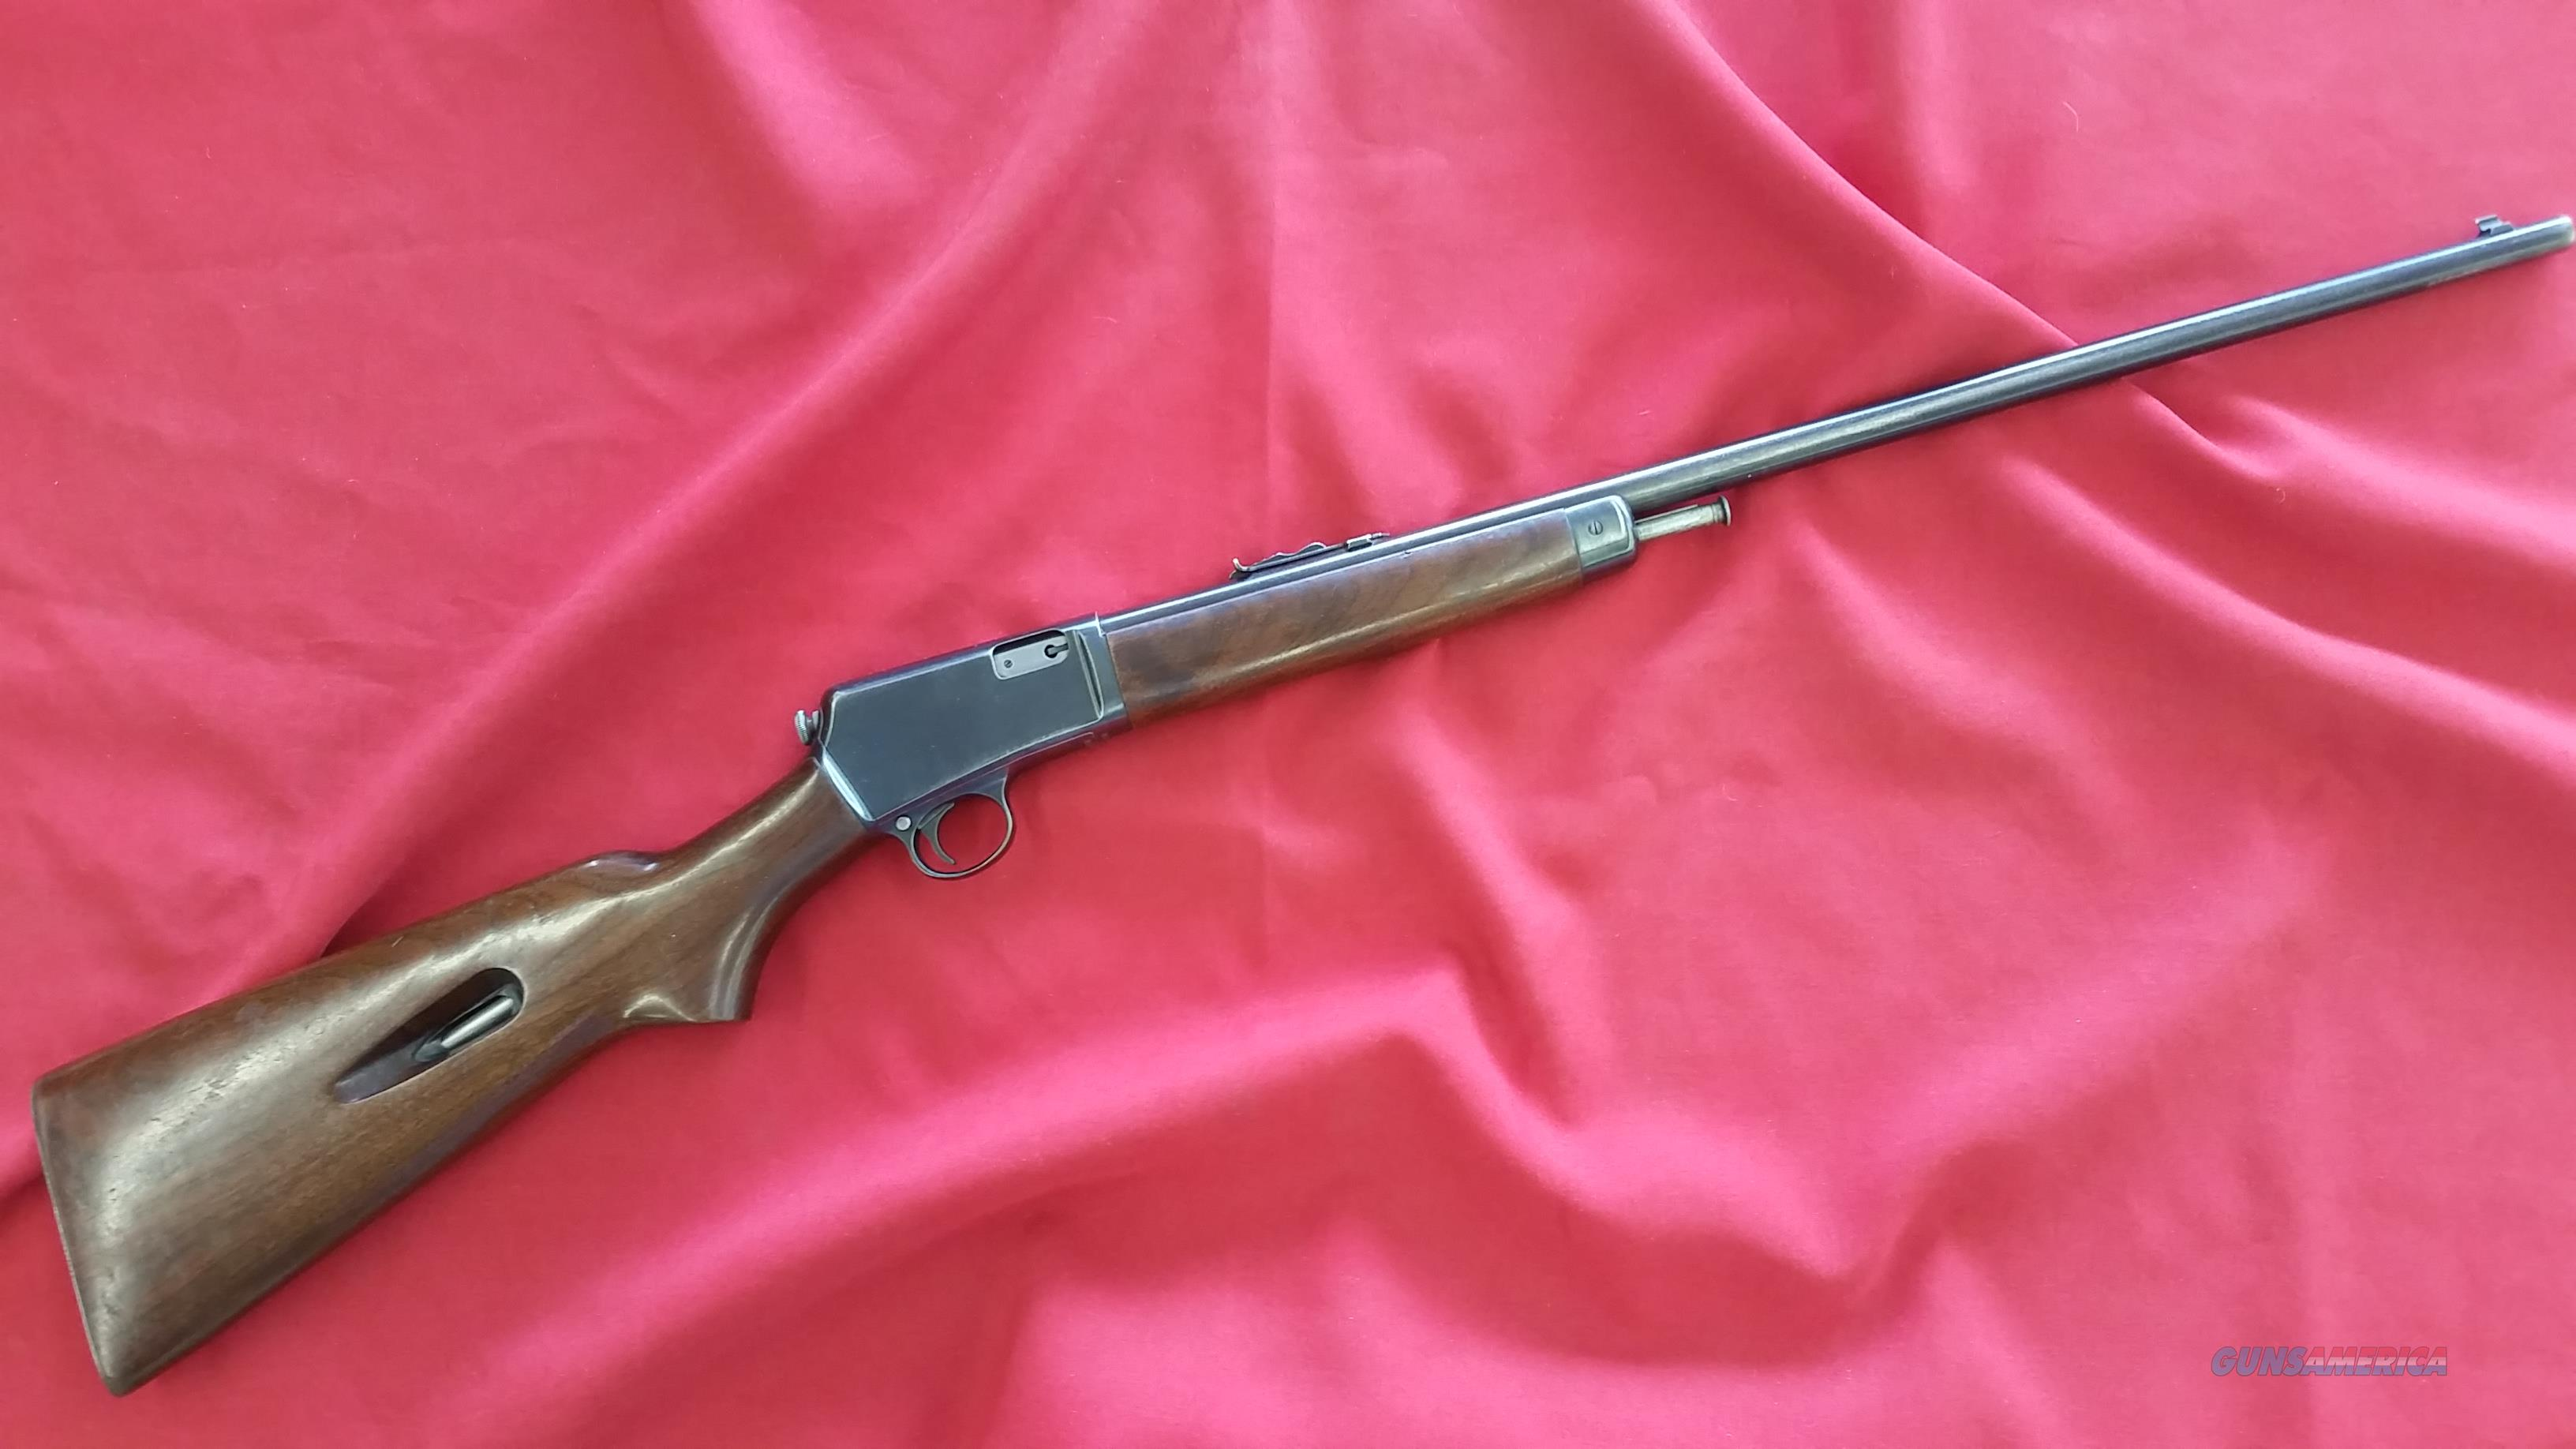 Used Winchester Model 63 .22 LR MFG. 1949  Guns > Rifles > Winchester Rifles - Modern Bolt/Auto/Single > Autoloaders